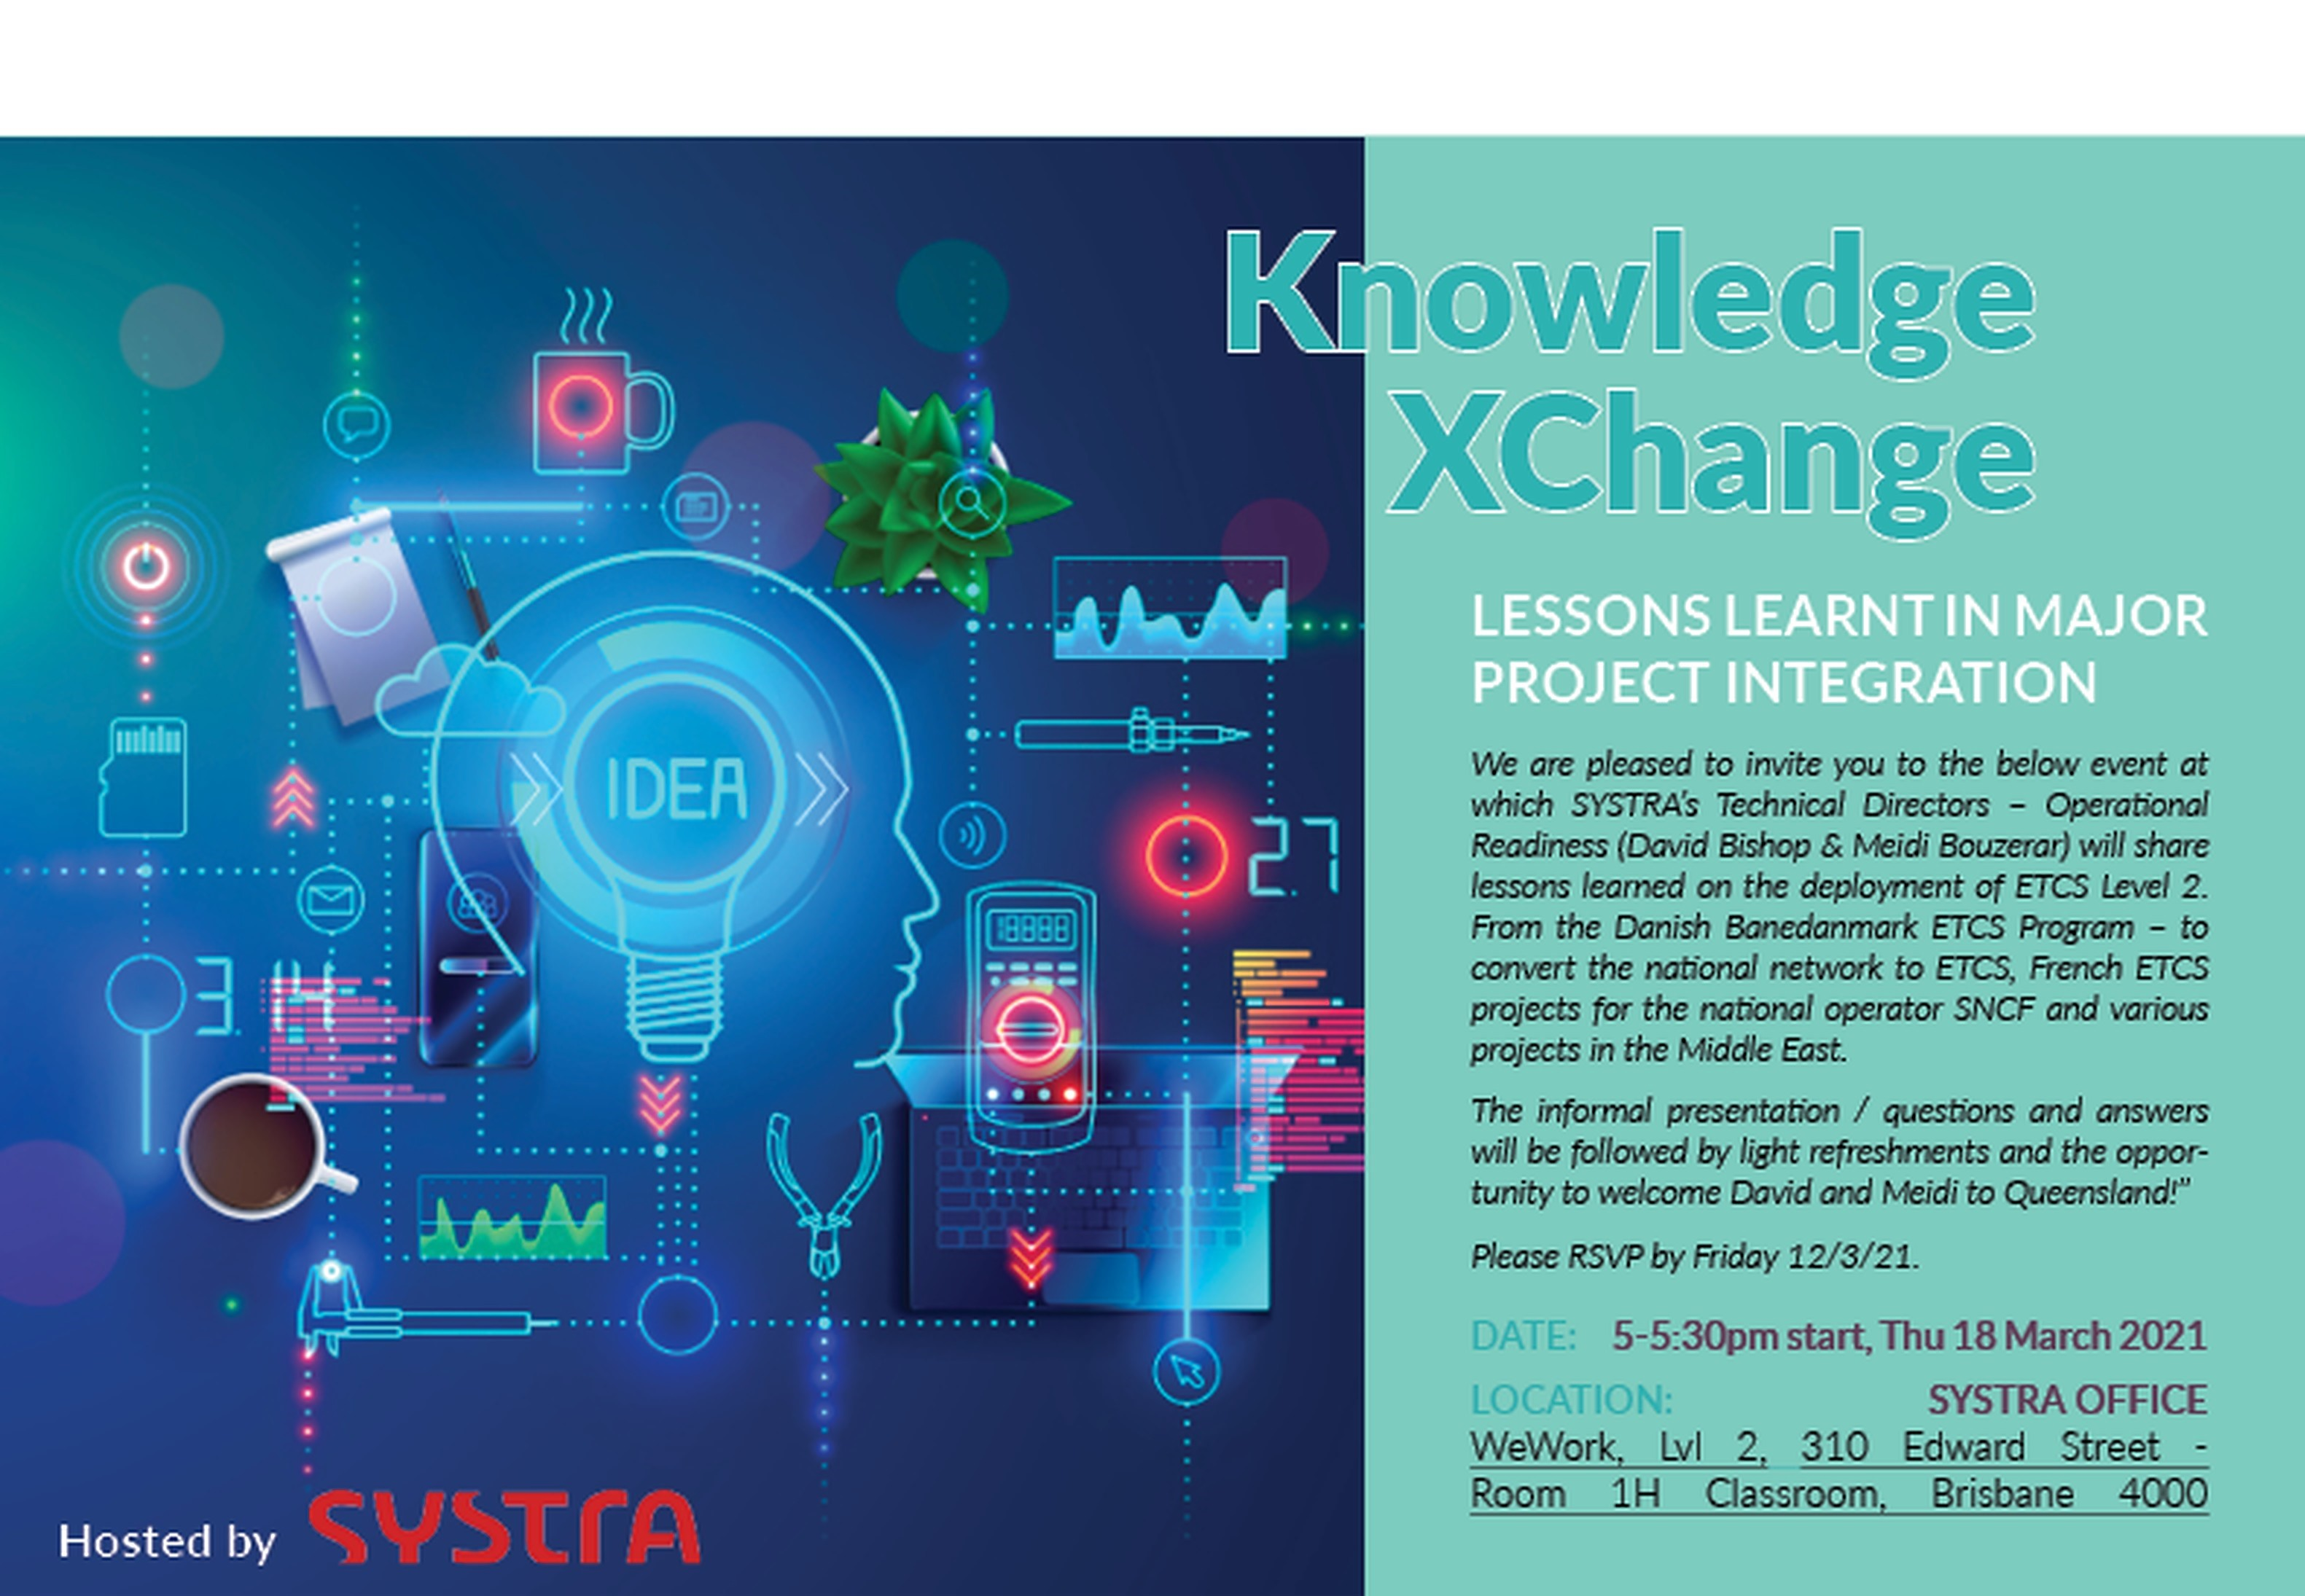 SYSTRA Knowledge XChange